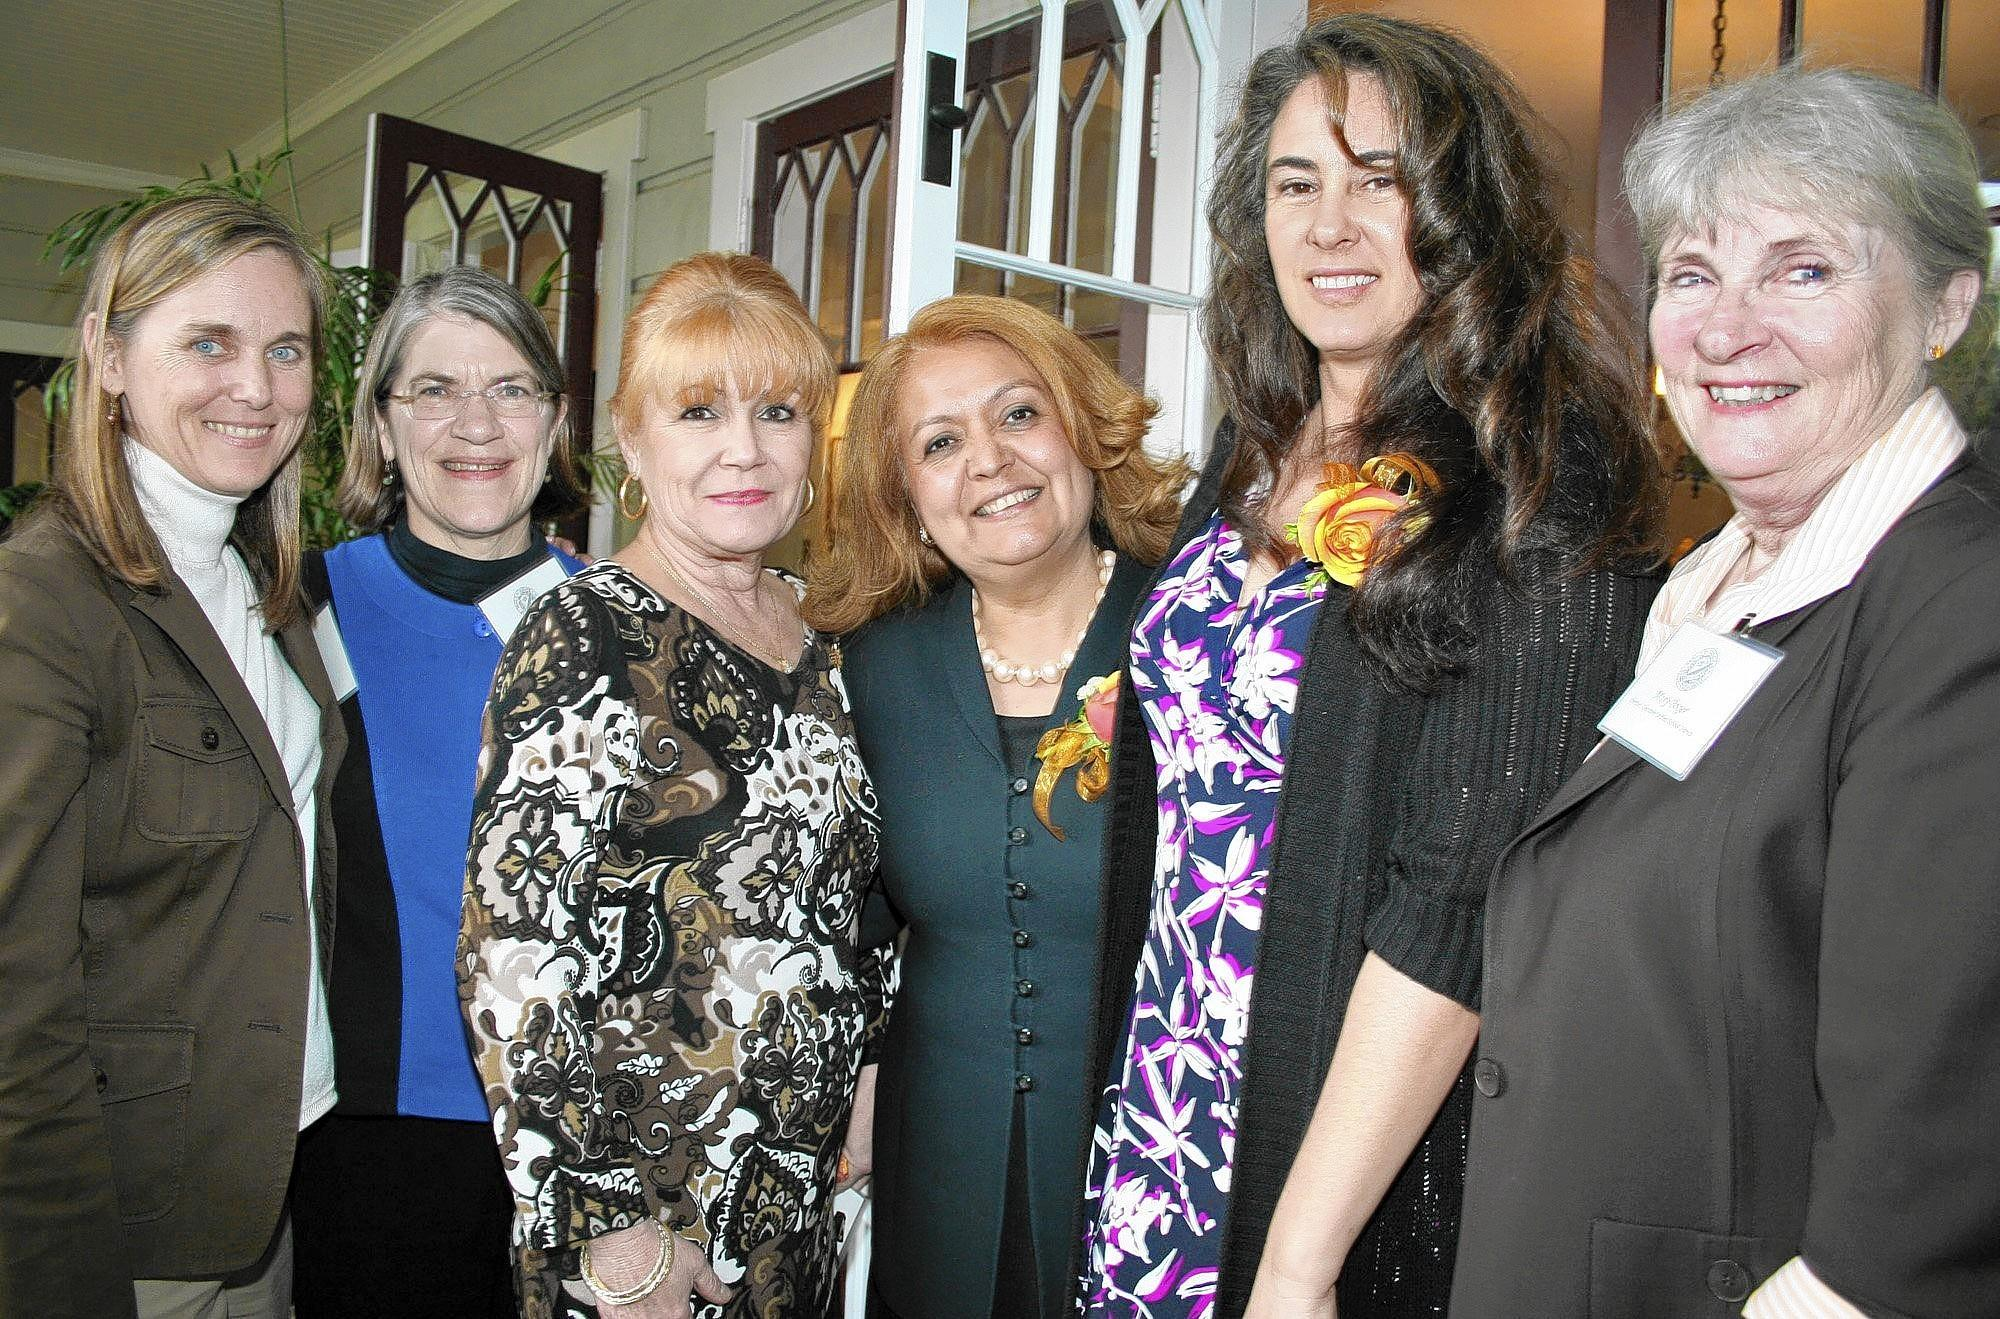 Mary Boger (extreme right) recently assumed the road of Glendale Unified School District president. She is pictured here with fellow board members, from left, Christine Walters, Joylene Wagner and Mary Boger (extreme right) join Mercy Velazquez and Women of the Year Amy Navarrete and Dominique Evans-Bye.